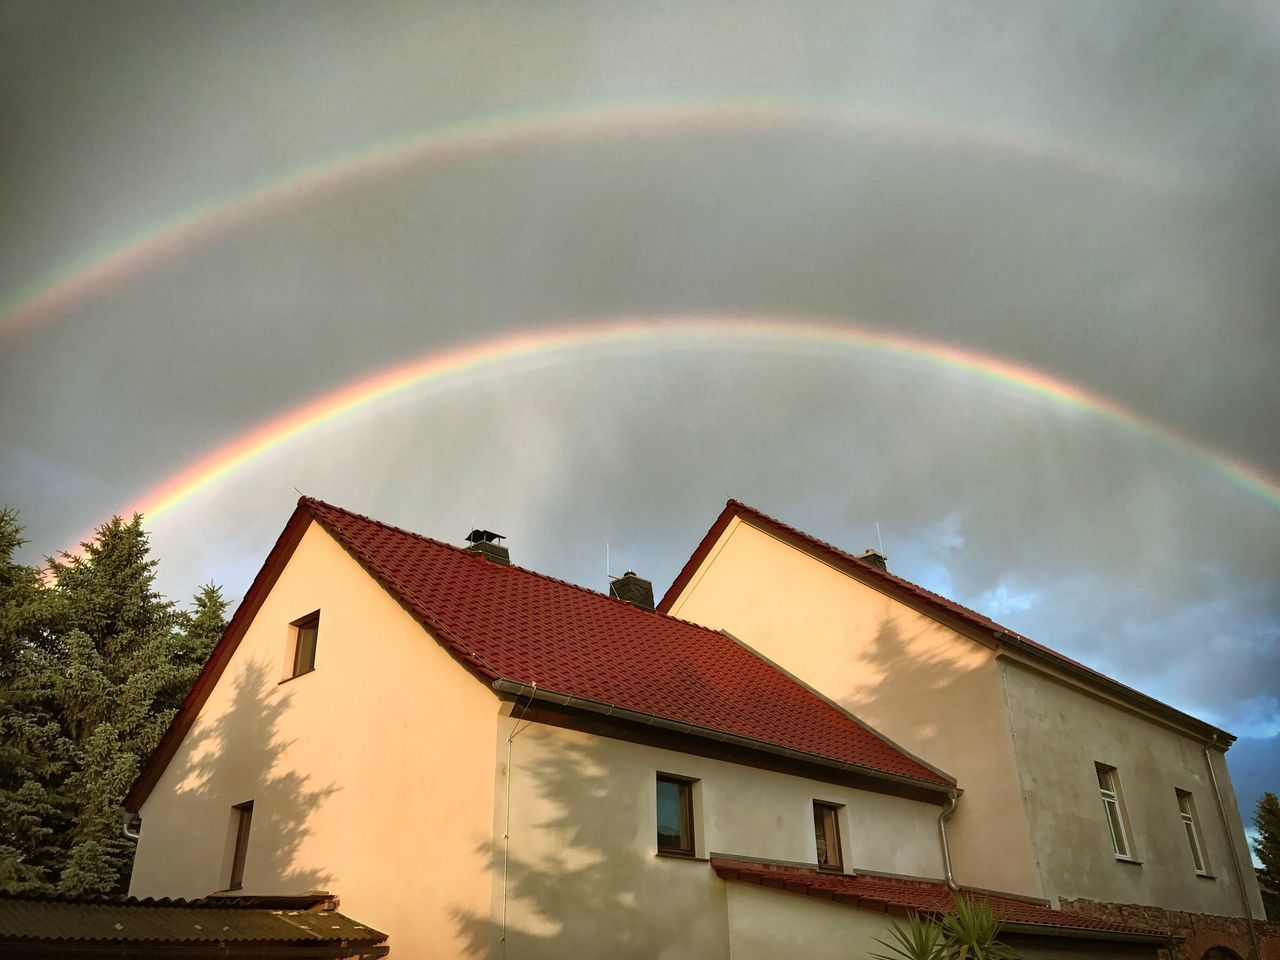 rainbow, building exterior, architecture, built structure, house, double rainbow, no people, multi colored, residential building, outdoors, weather, sky, day, roof, nature, beauty in nature, tiled roof, tree